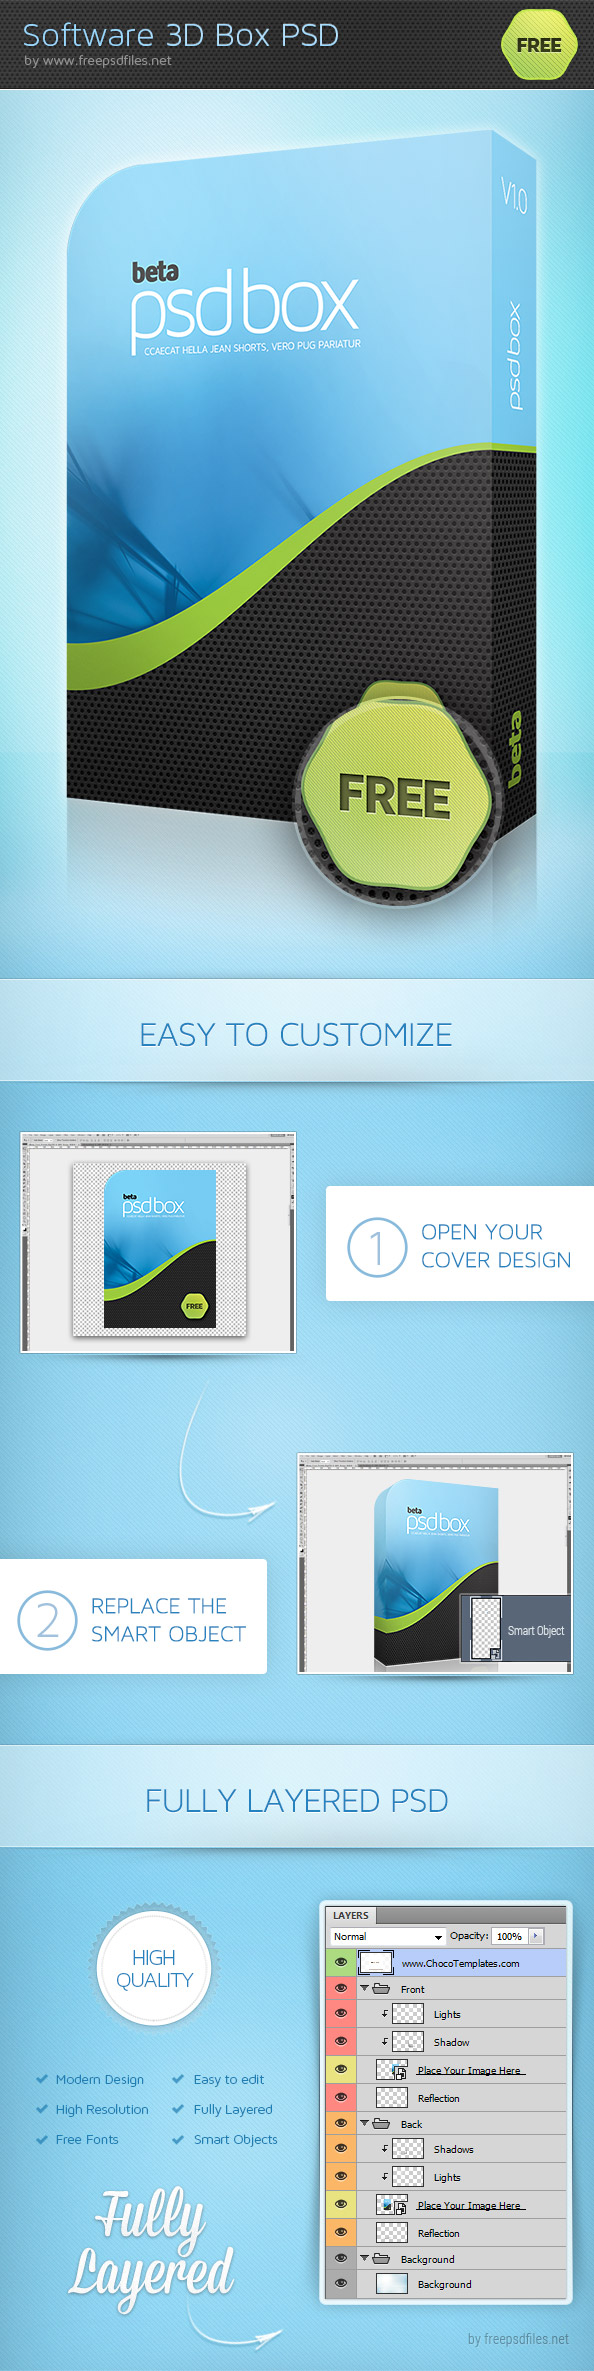 Software 3D Box PSD Template Preview